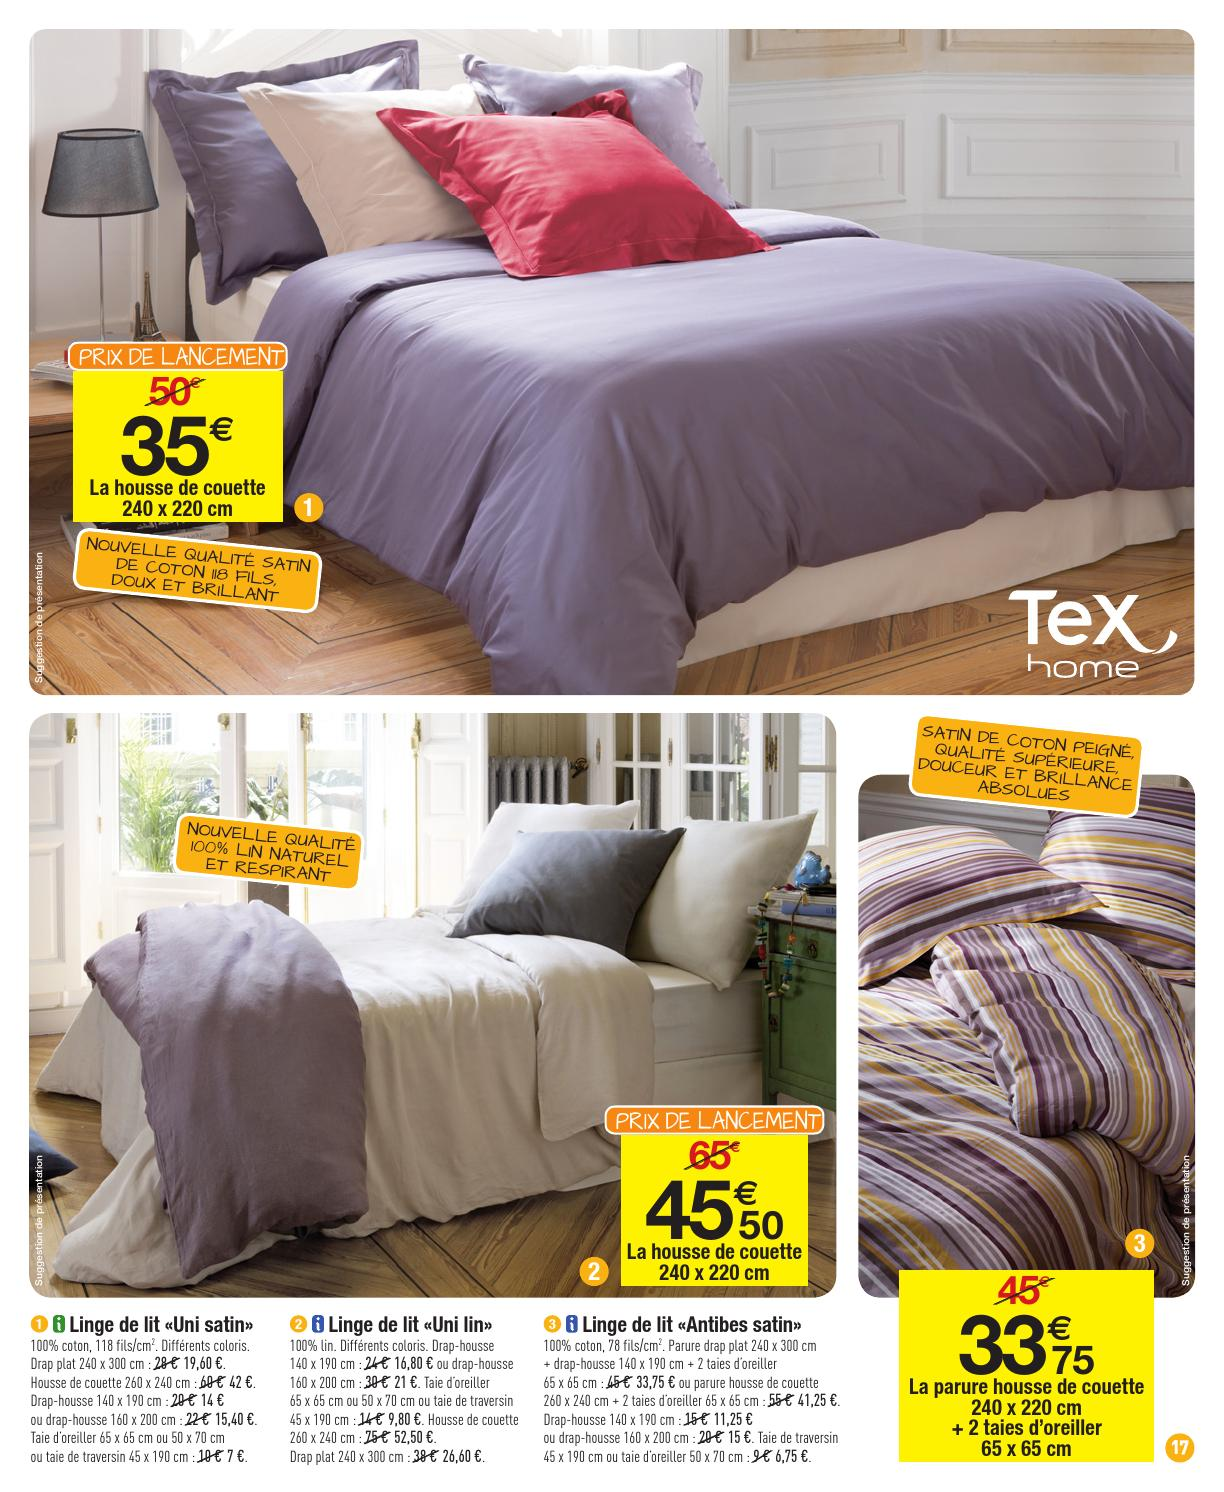 Taie De Traversin 140 Catalogue Carrefour 27 12 2013 11 01 2014